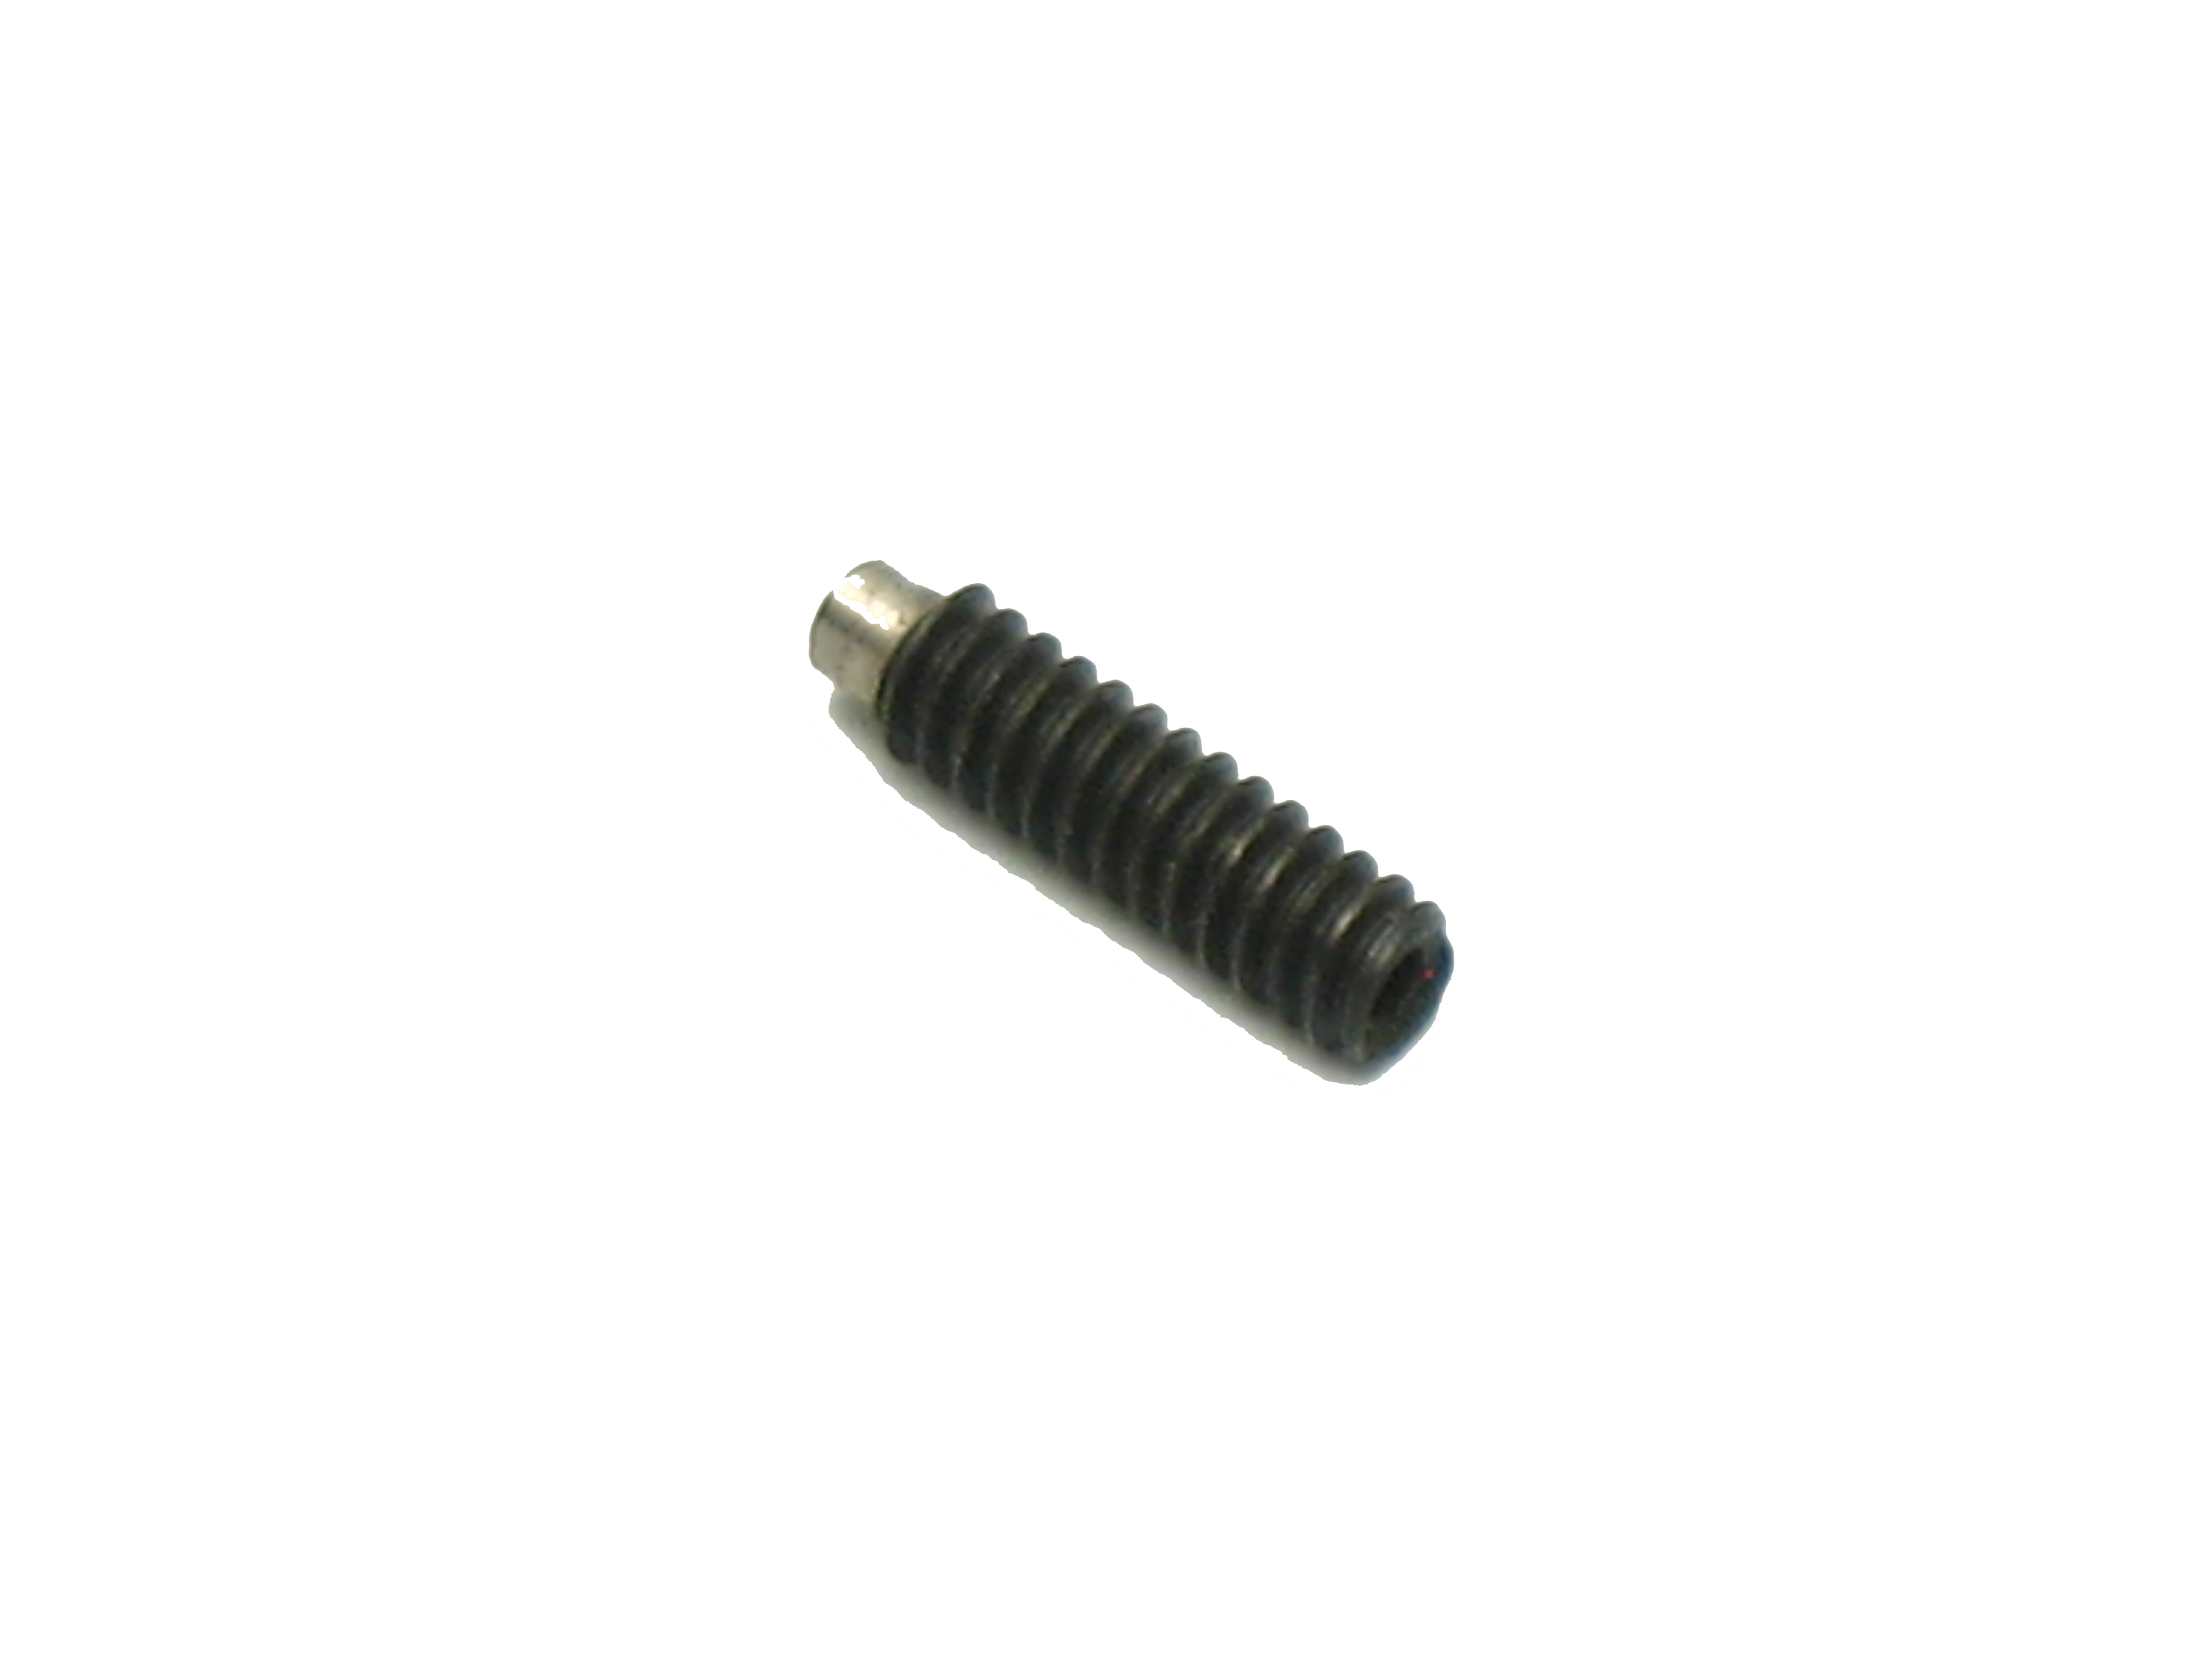 Kahler Flat Mount Cam Locking Screw - PN# 9540